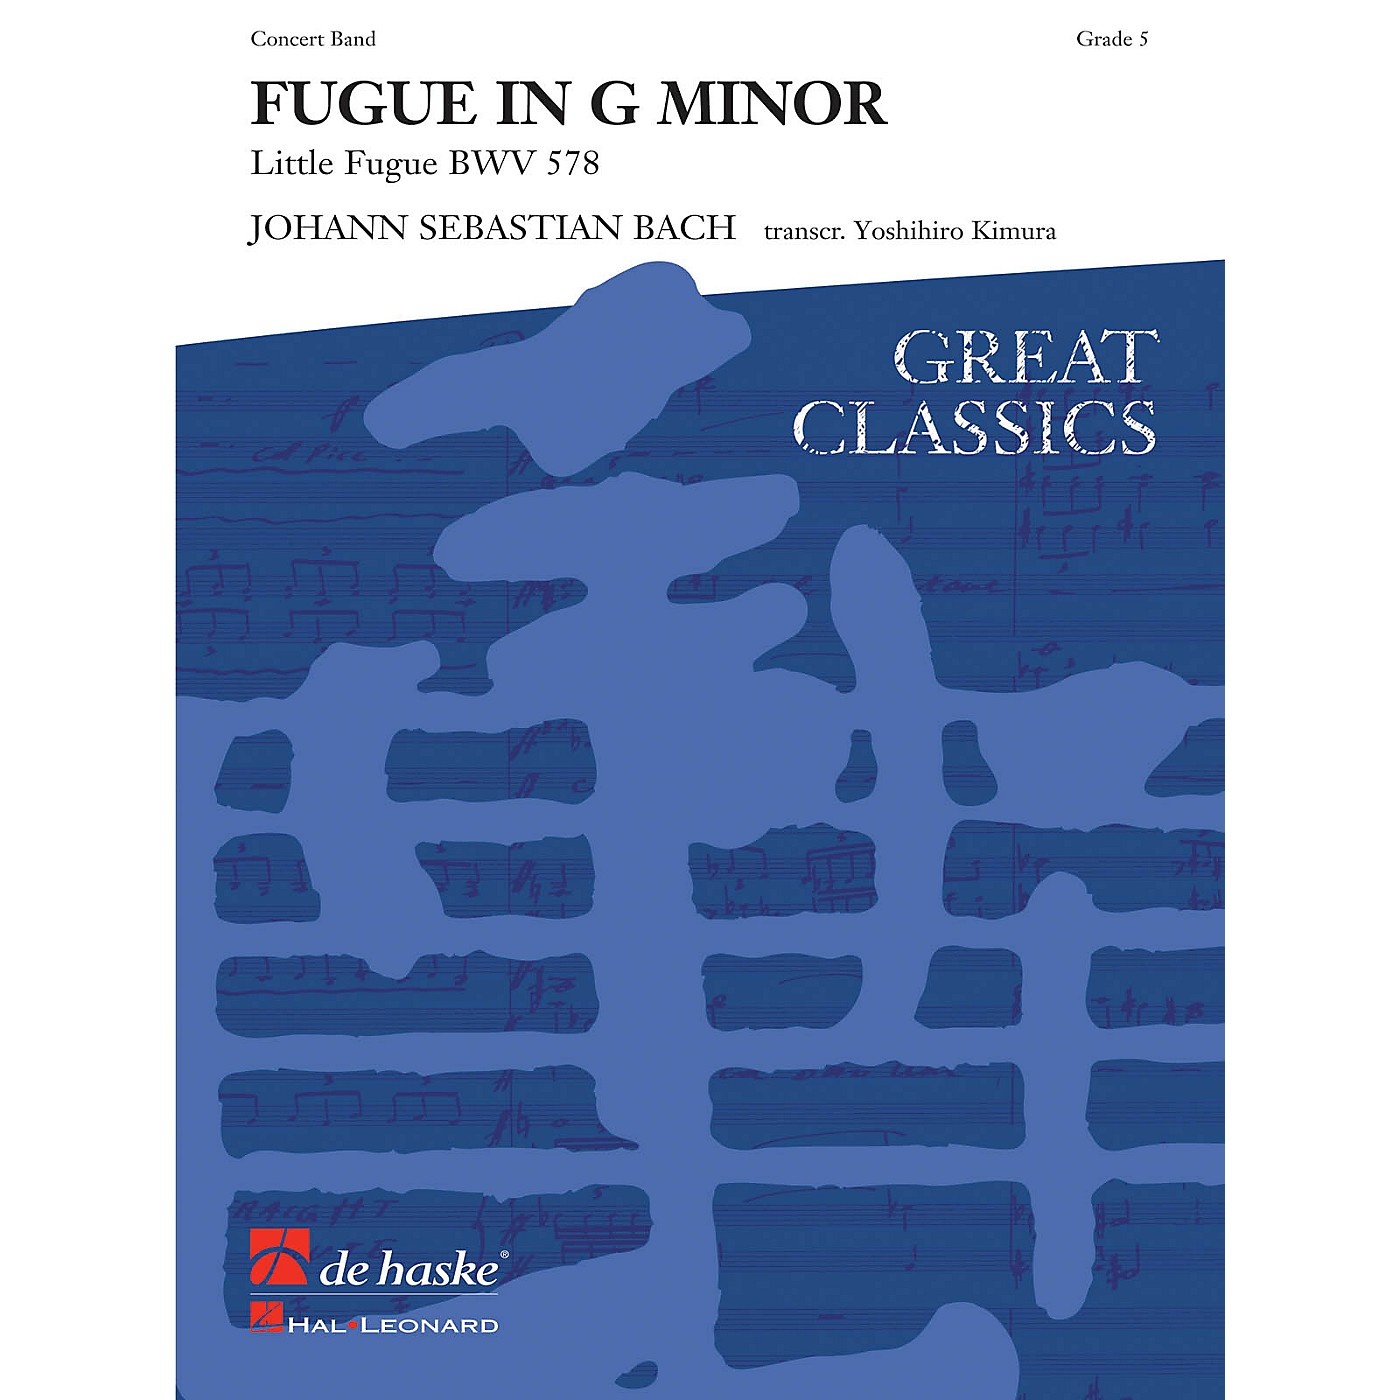 Hal Leonard Fugue In G Minor Score Only Concert Band thumbnail